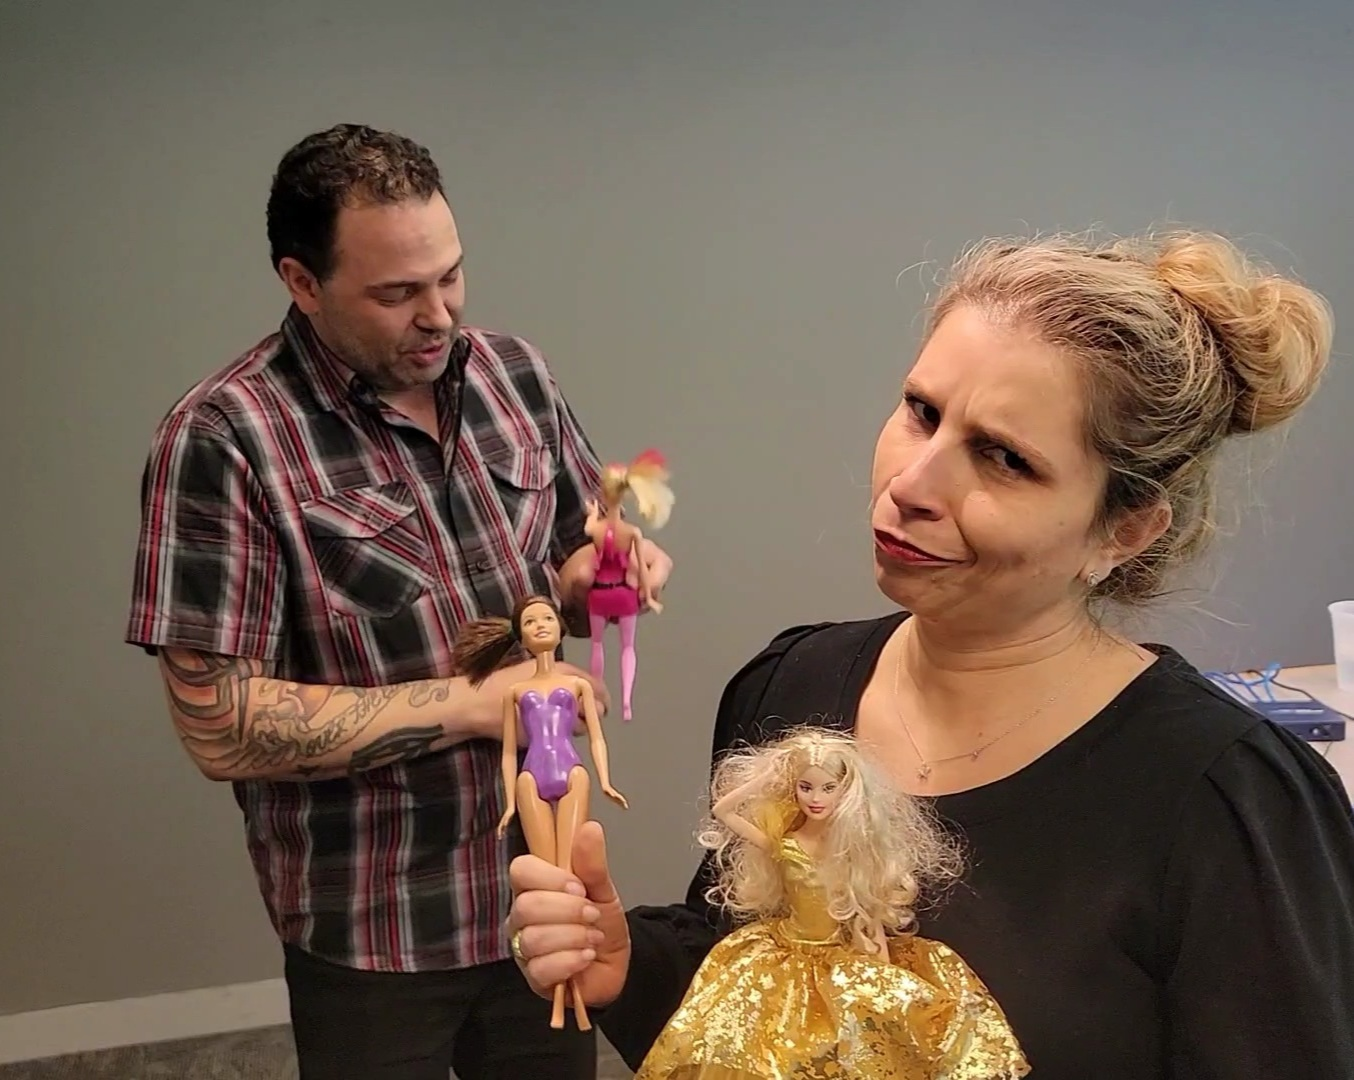 Getting Rid of All Those Old Barbie Dolls?